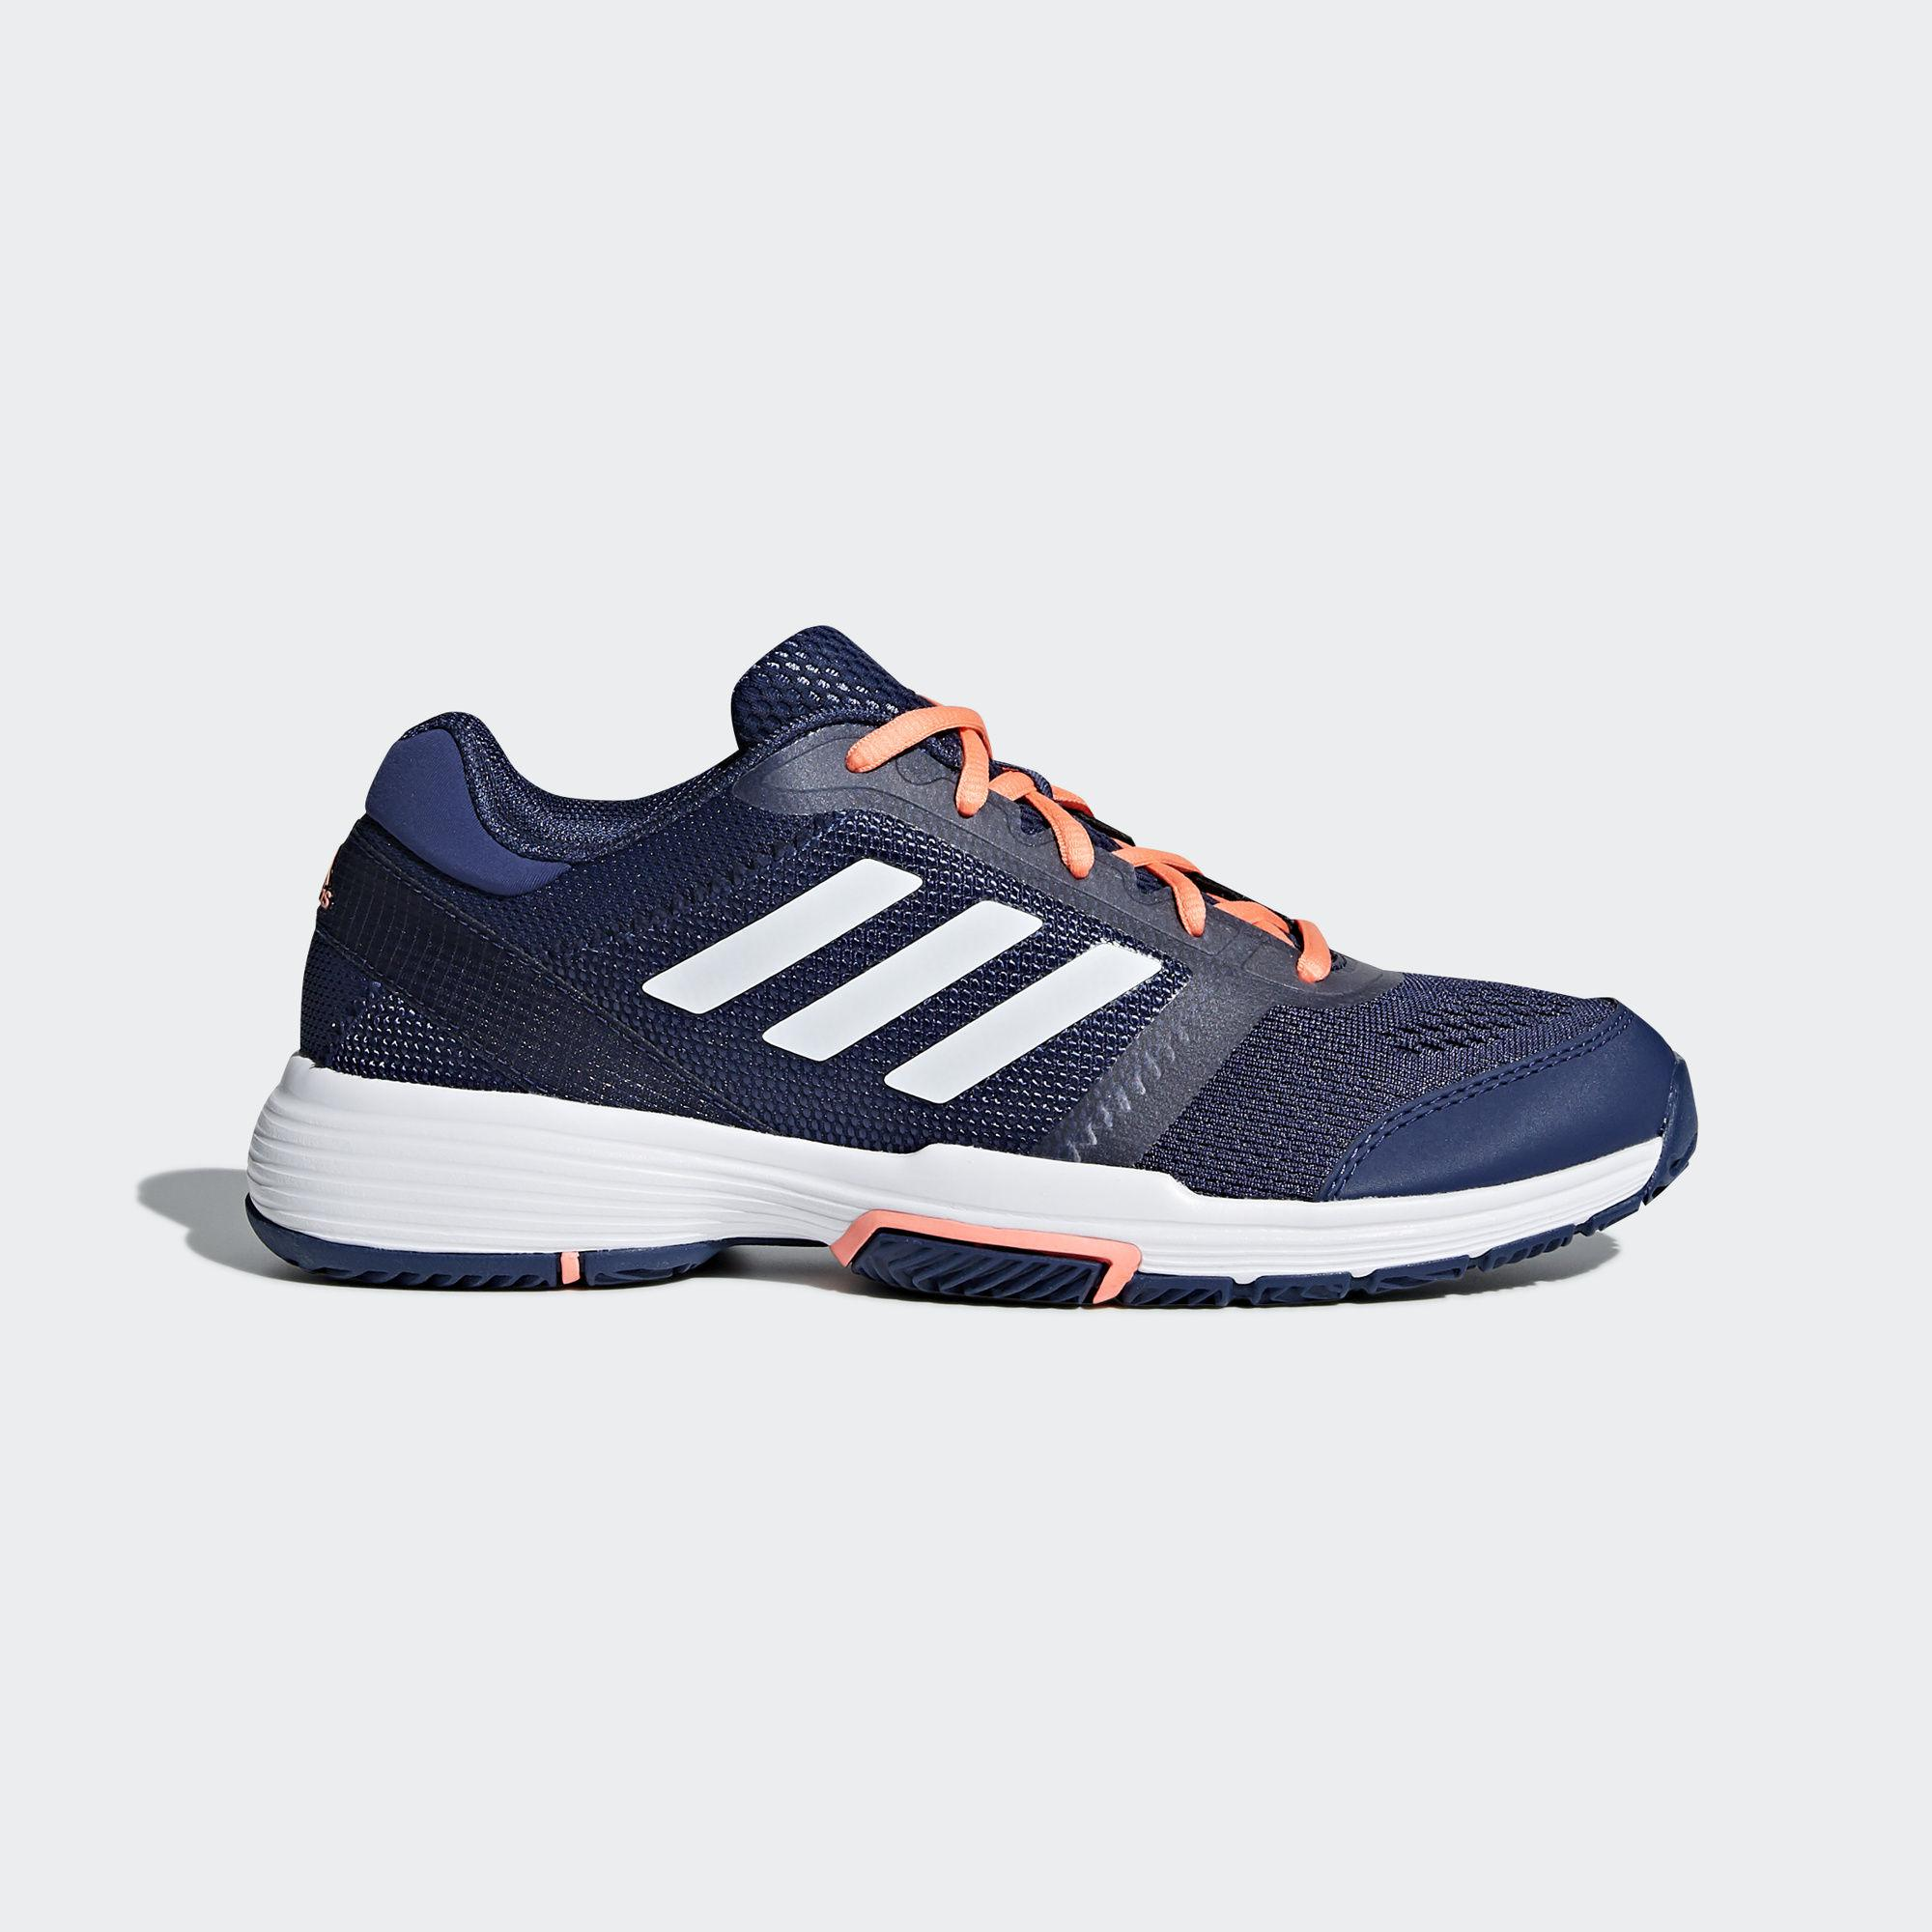 Adidas Womens Barricade Club Tennis Shoes - Indigo